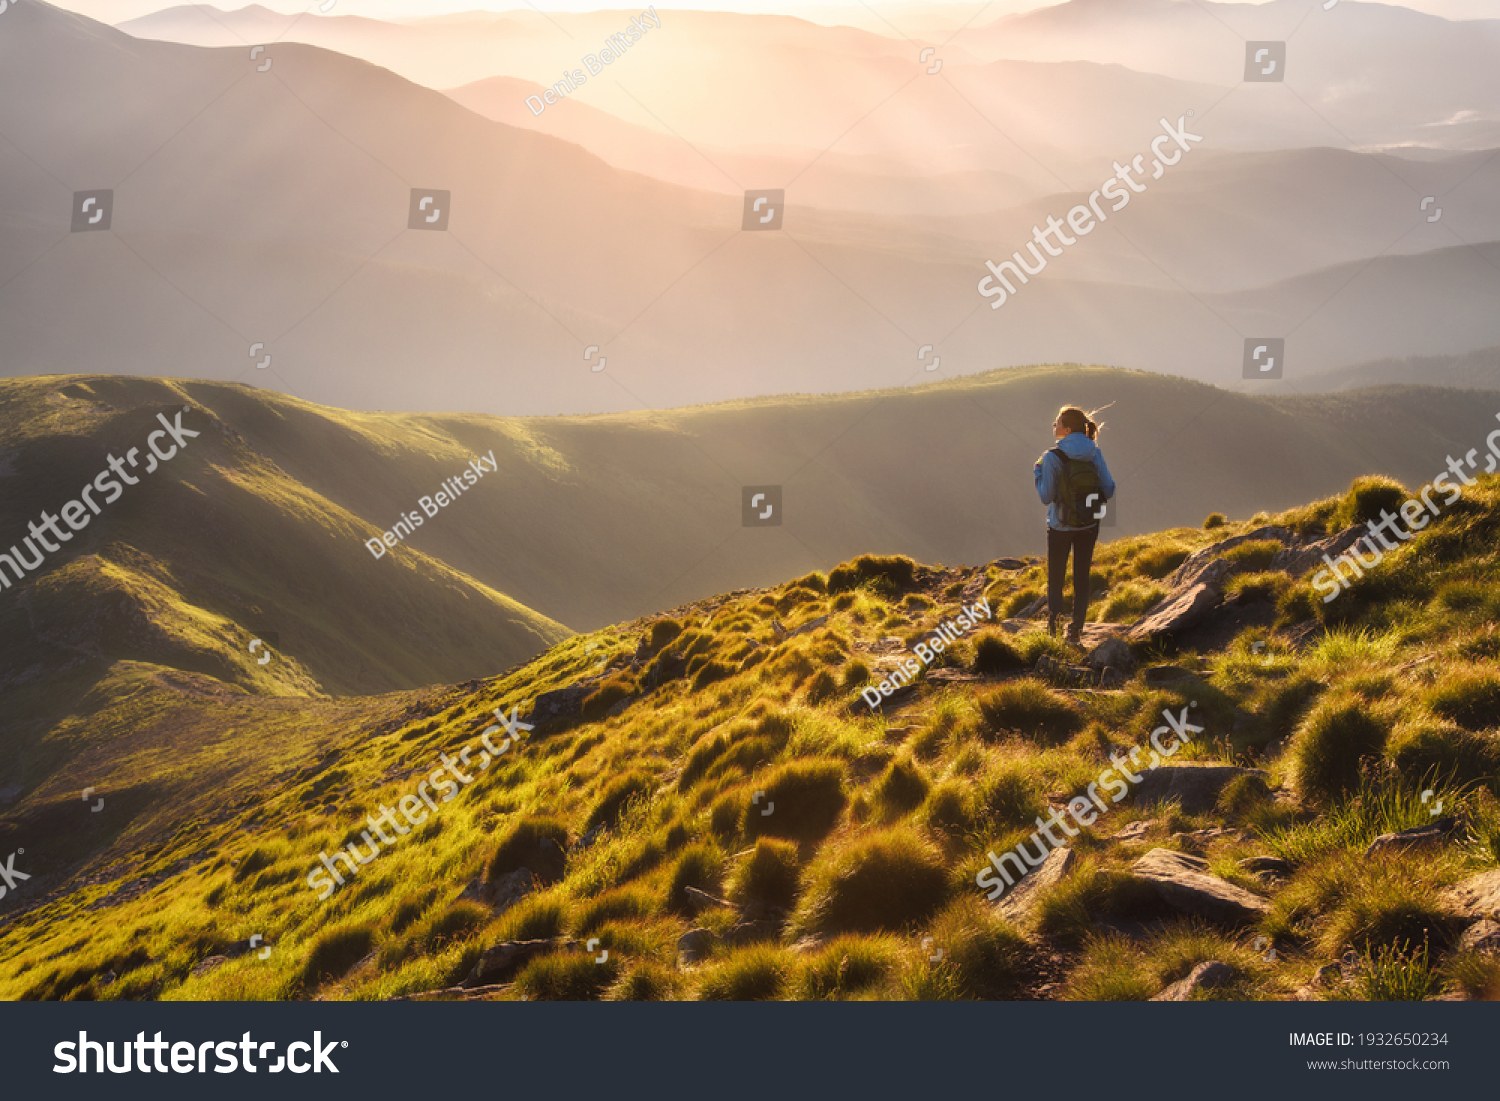 Girl on mountain peak with green grass looking at beautiful mountain valley in fog at sunset in summer. Landscape with young woman on the trail, foggy hills, forest, sky. Travel and tourism. Hiking #1932650234